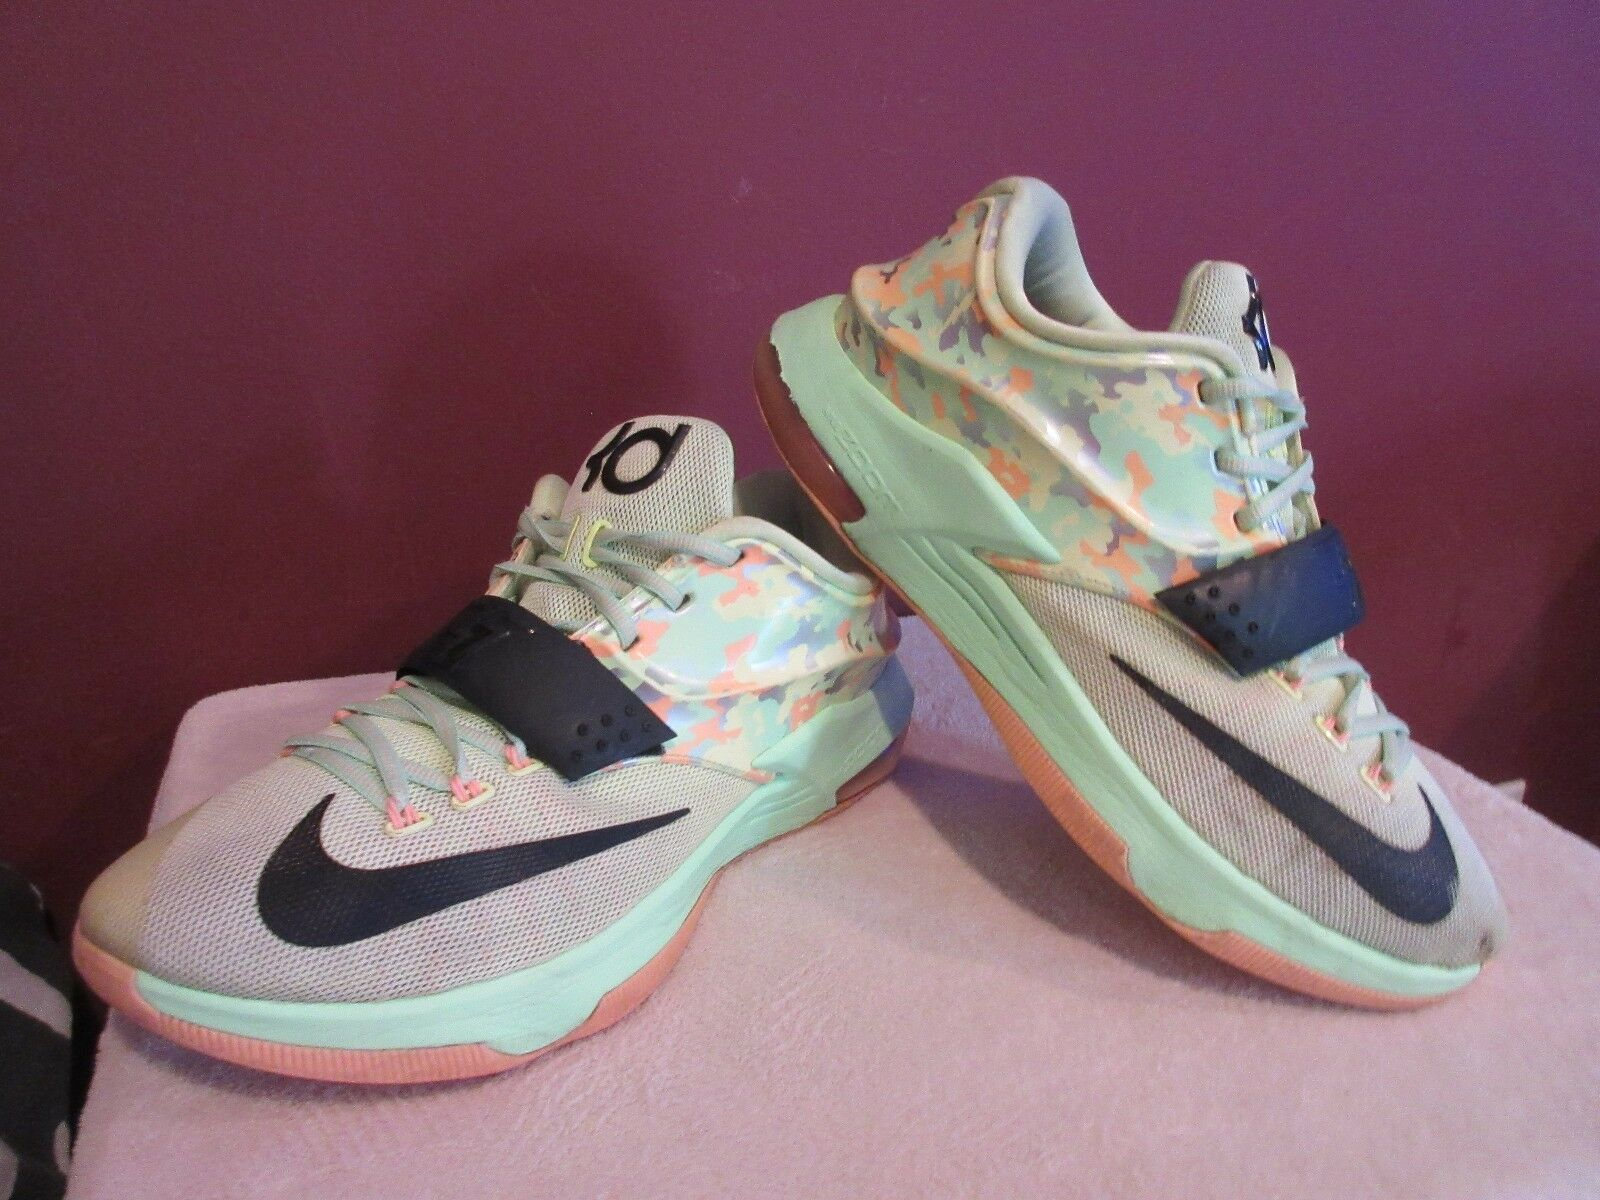 best sneakers 0a46b 26977 NIKE KEVIN DURANT DURANT DURANT Vll EASTER LIQUID LIME (65396 304) SNEAKERS  MEN S SIZE